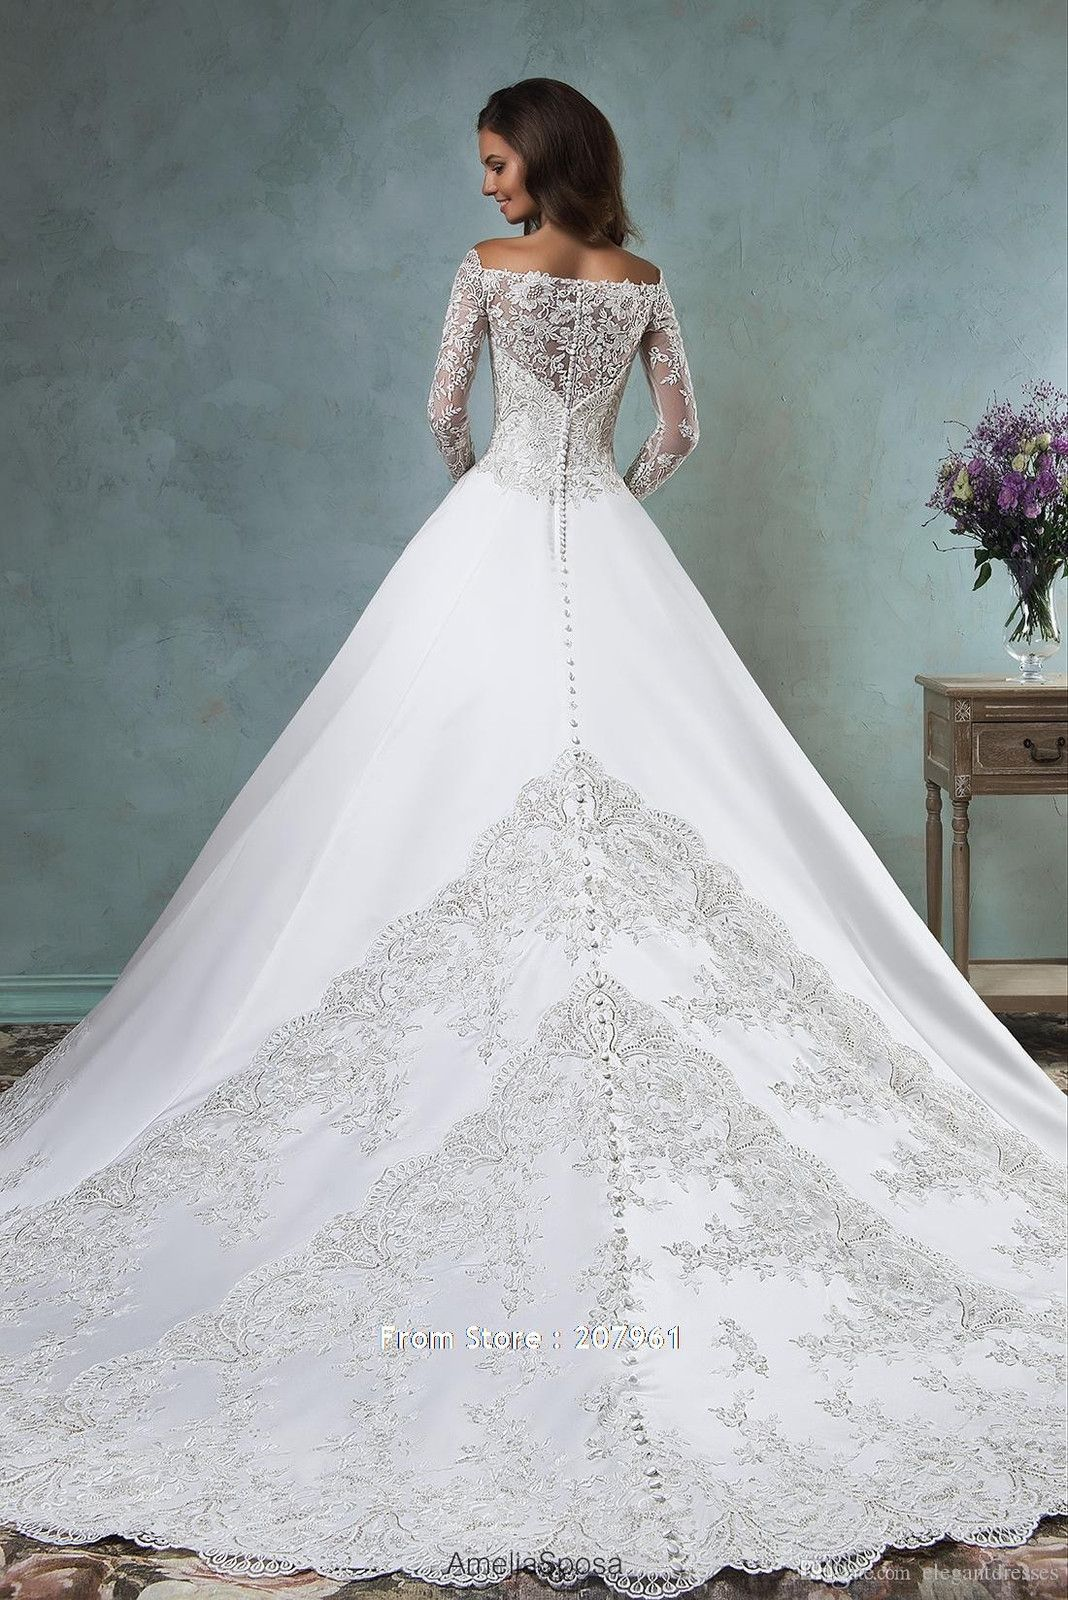 Luxurious lace long sleeve wedding dress offshoulder appliques